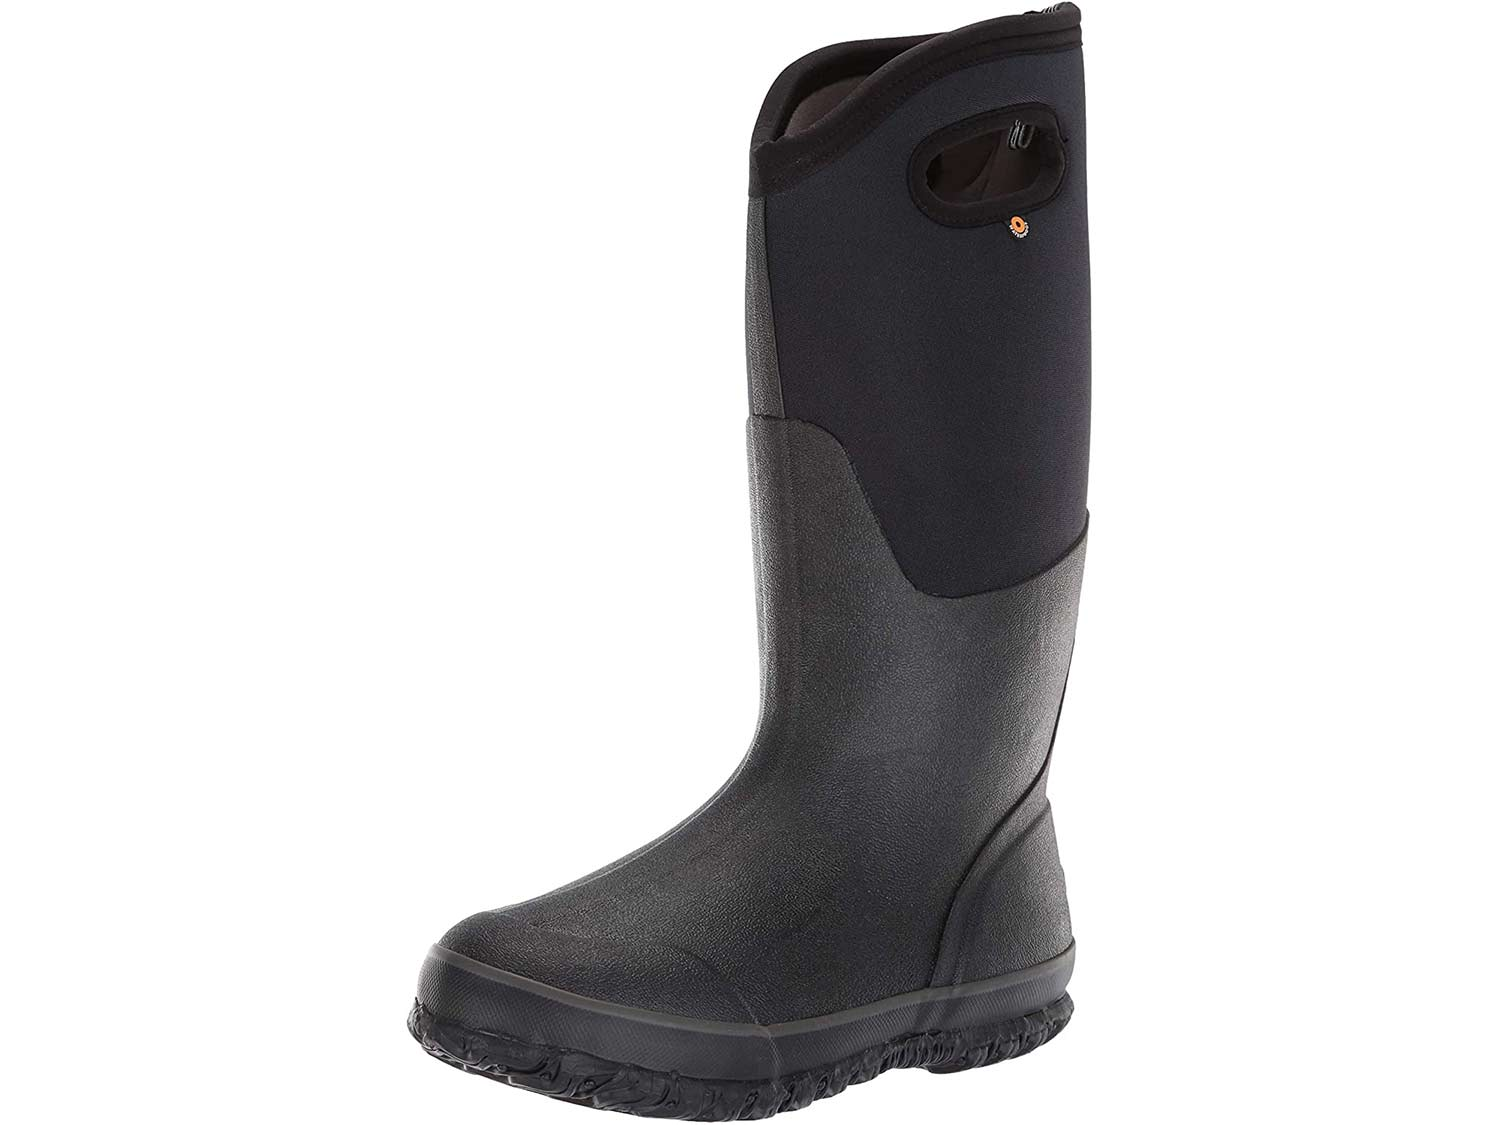 Bogs Classic High Handle Rain and Snow Boot